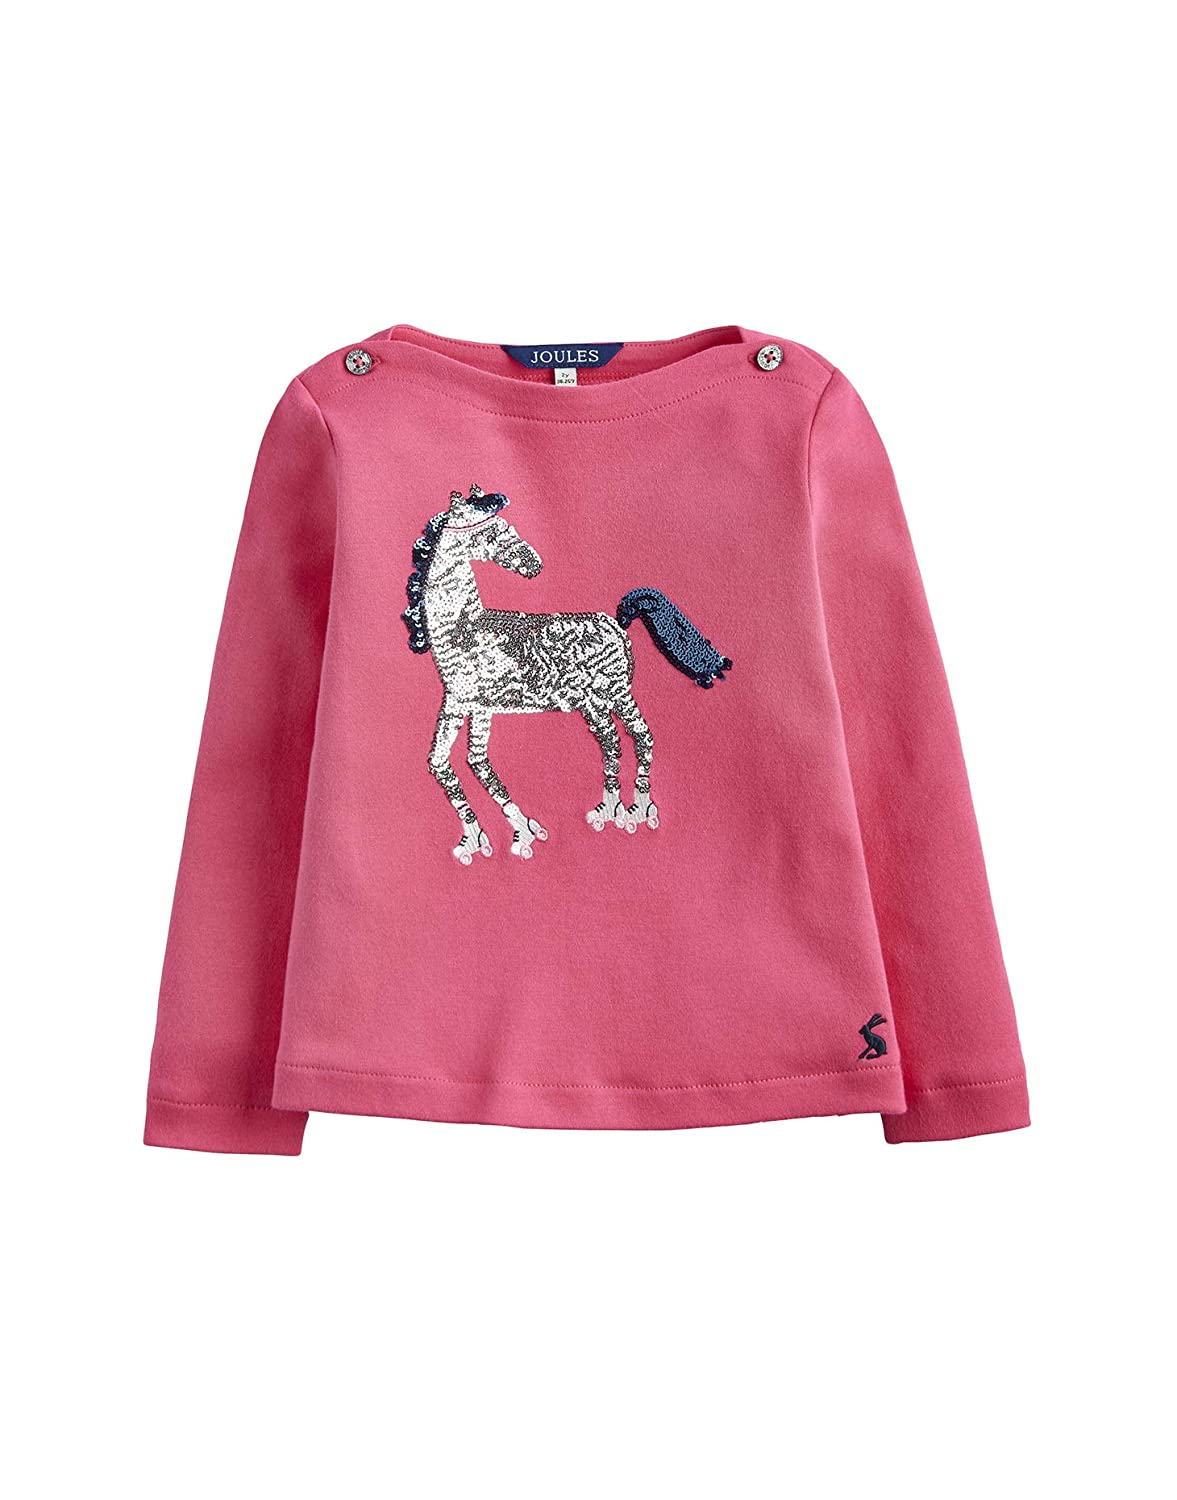 Joules Long Sleeve Graphic Sequin Top - Deep Pink Roller Horse